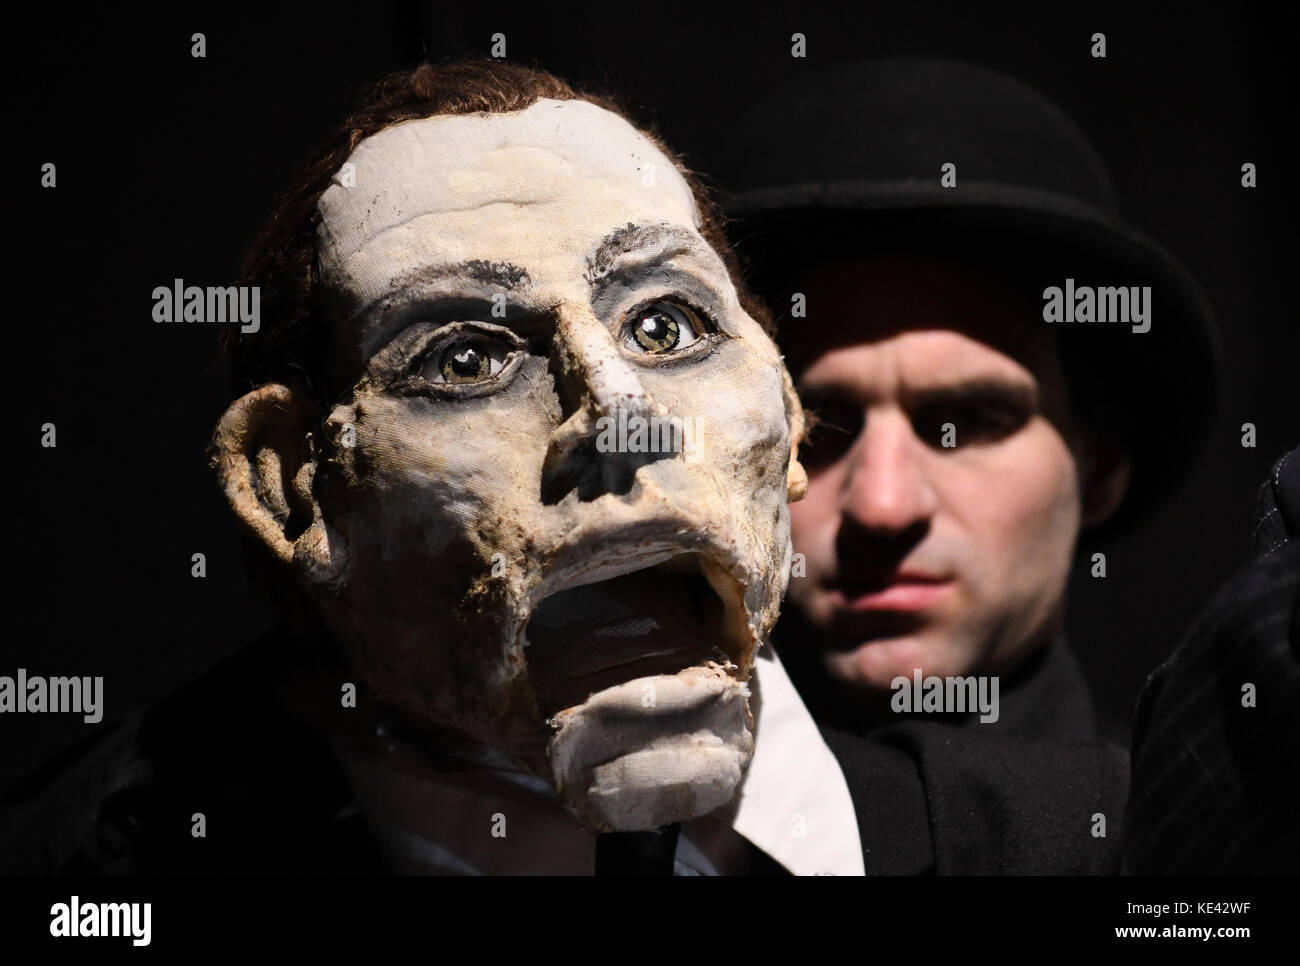 Bremen, Germany. 12th Oct, 2017. Actors rehearse a puppet theatre adaptation of Kafka's 'The Trial' in Bremen, Germany, Stock Photo